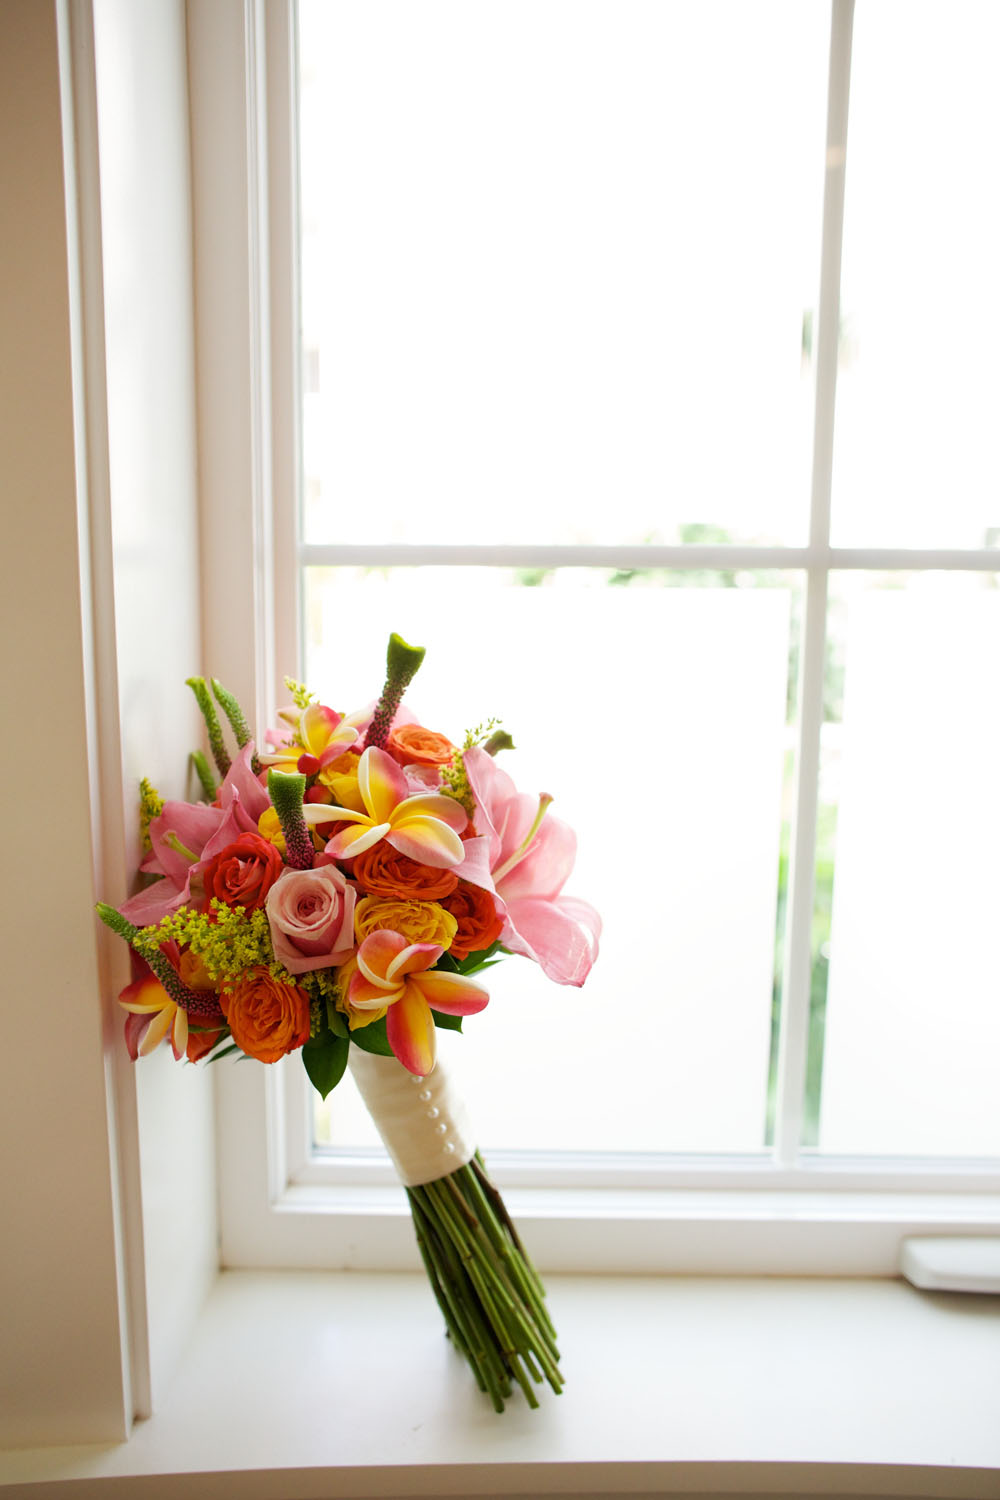 Bright tropical wedding bouquet by Bliss Wedding Design - photo by Anna Kim Photography